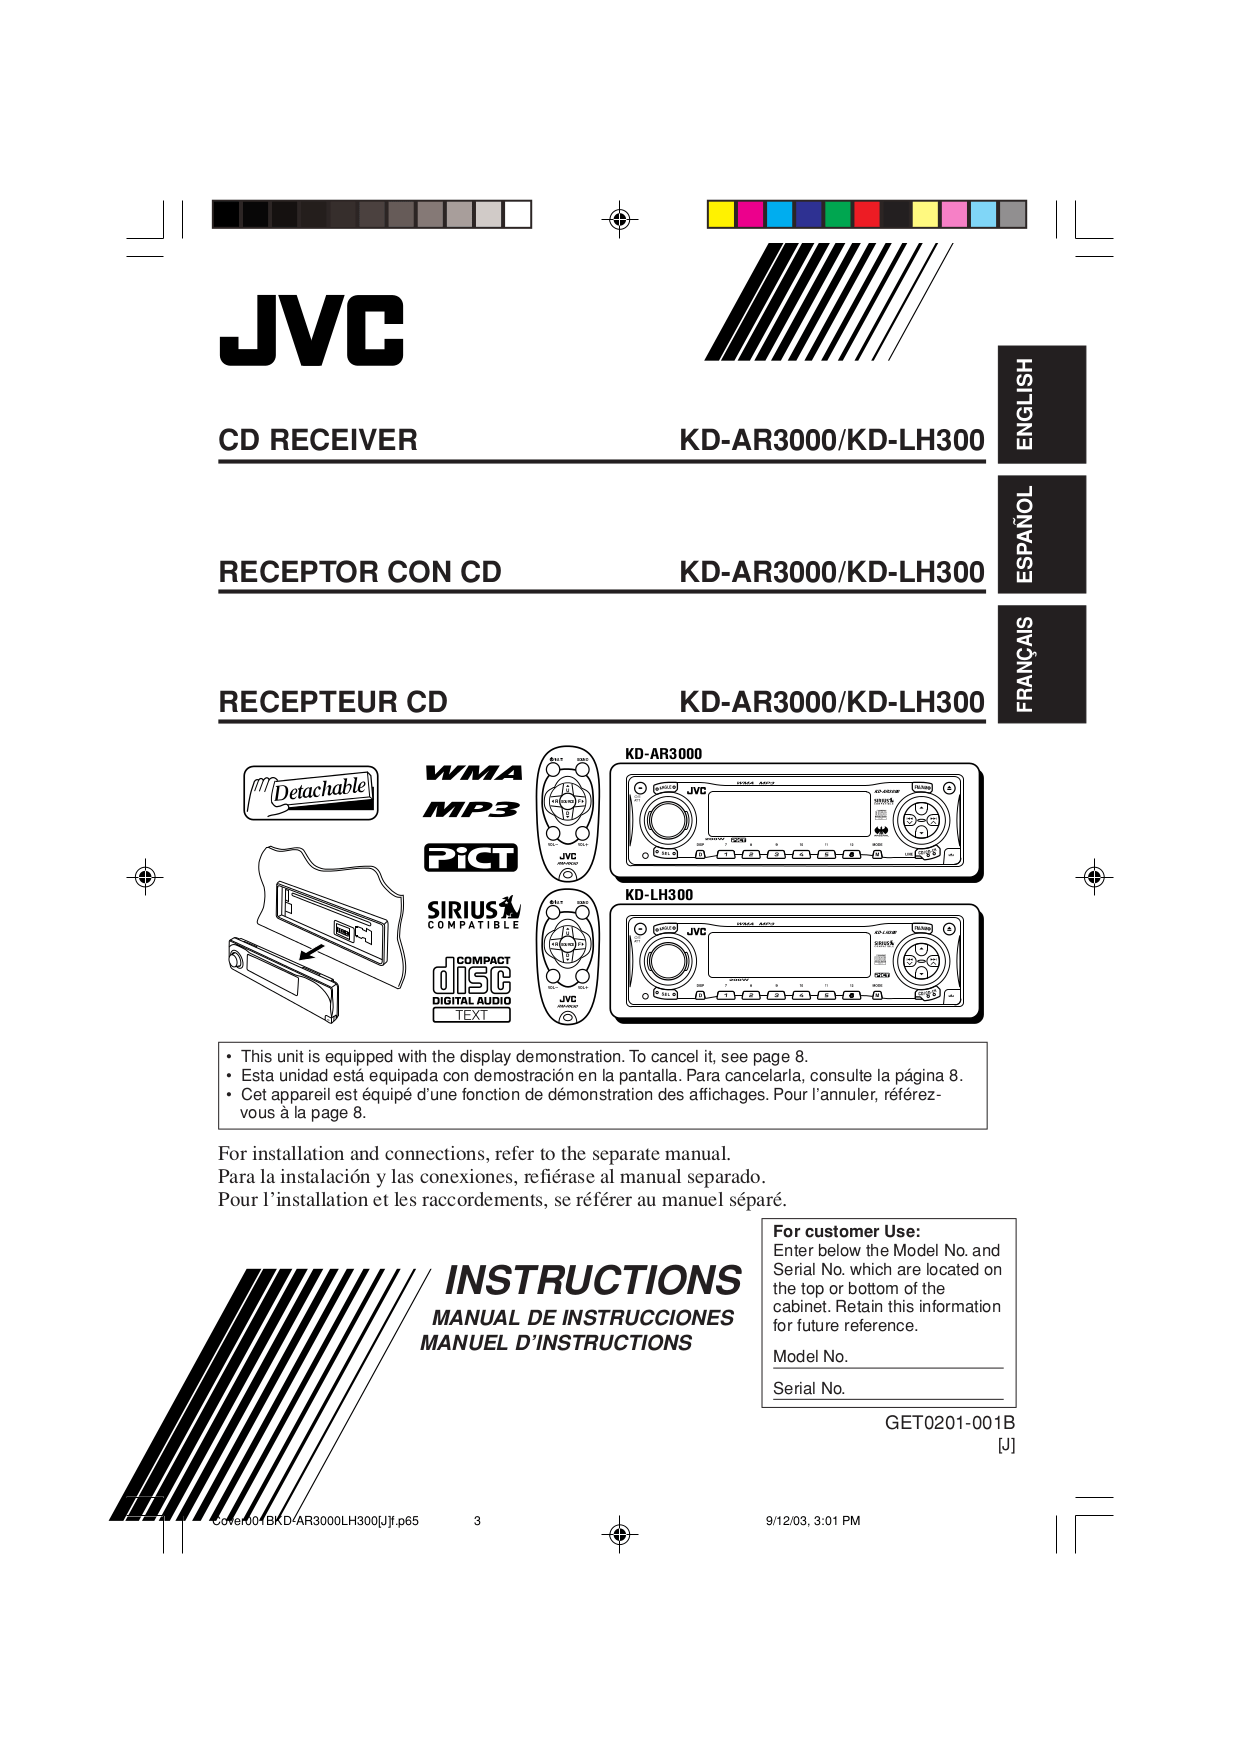 Download free pdf for JVC KD-AR3000 Car Receiver manual